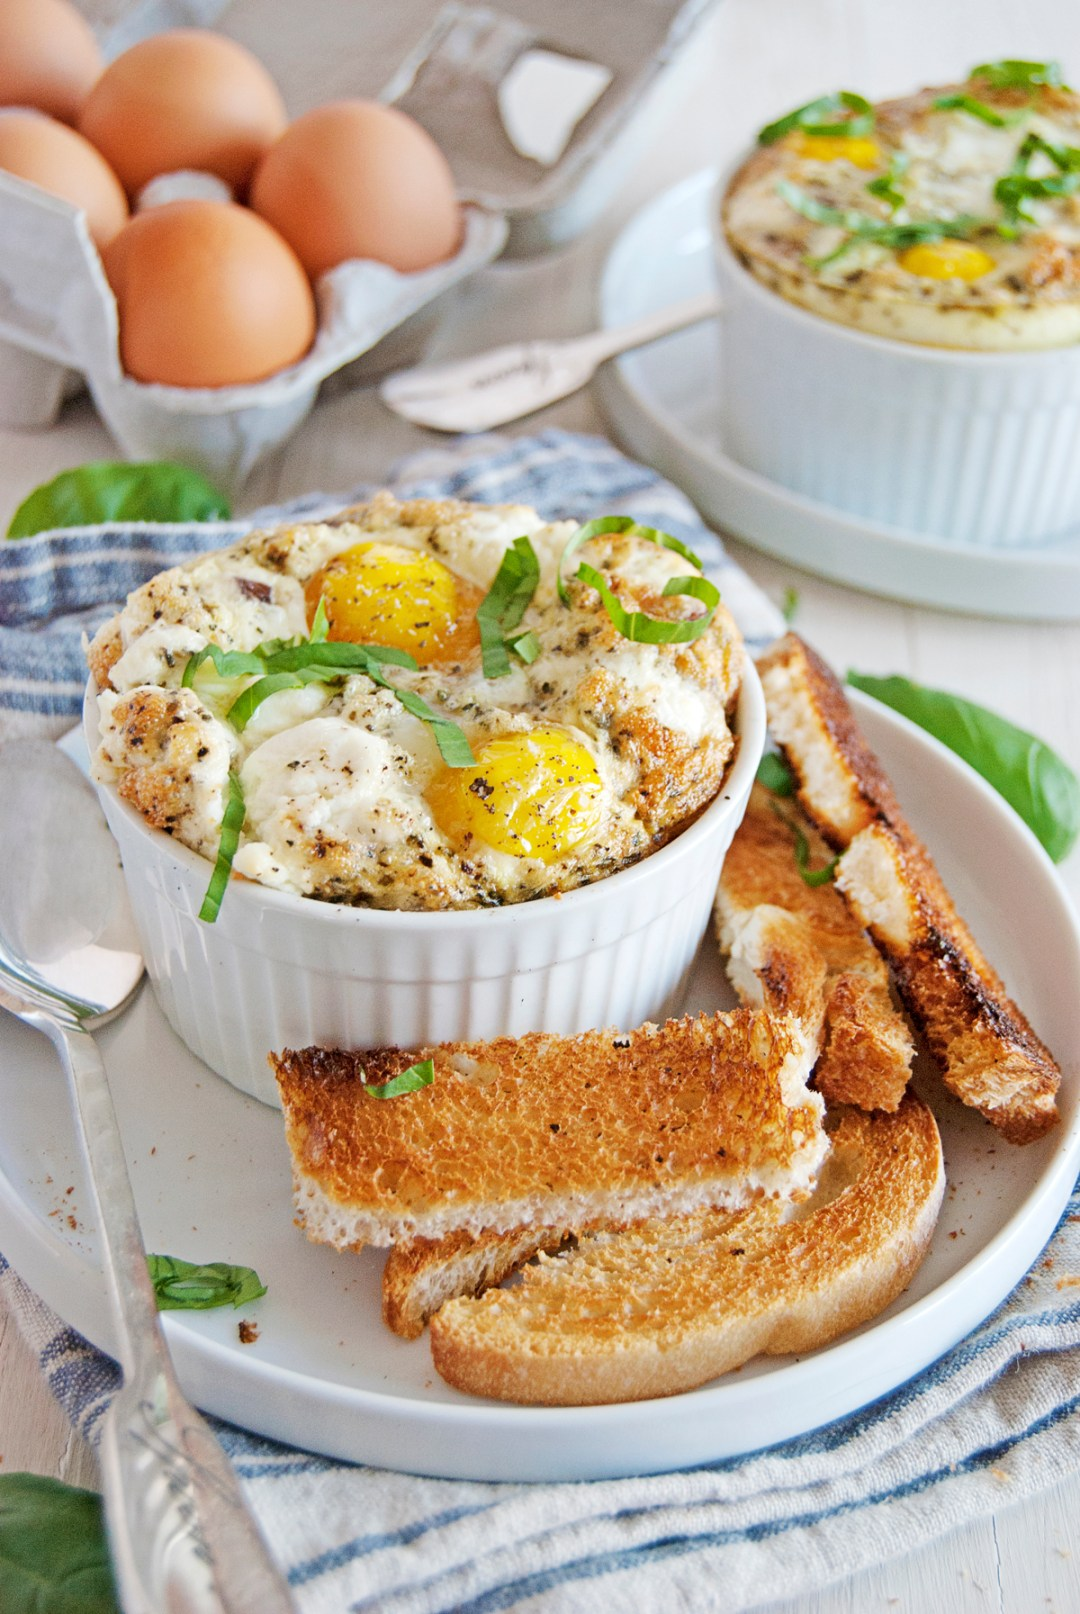 These egg bakes are the perfect simple breakfast, and feature mushrooms, shallots, fresh basil, and tangy goat cheese!